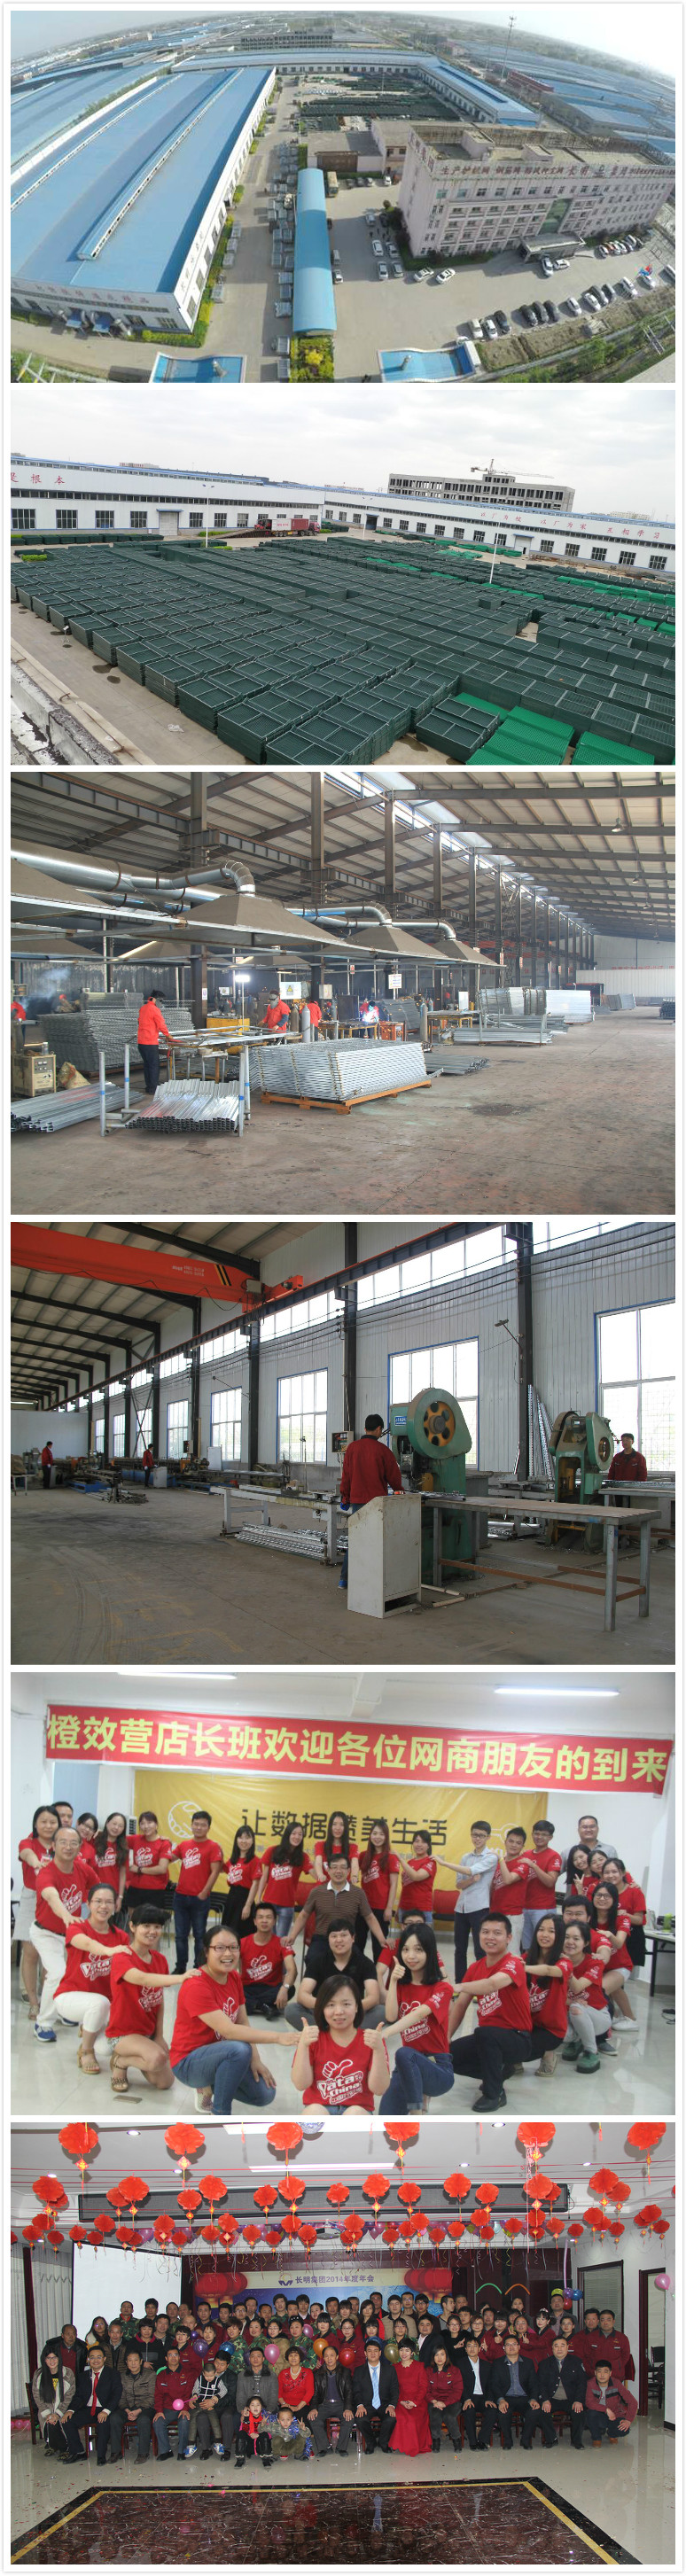 Anping Deming Metal Net Co., Ltd.